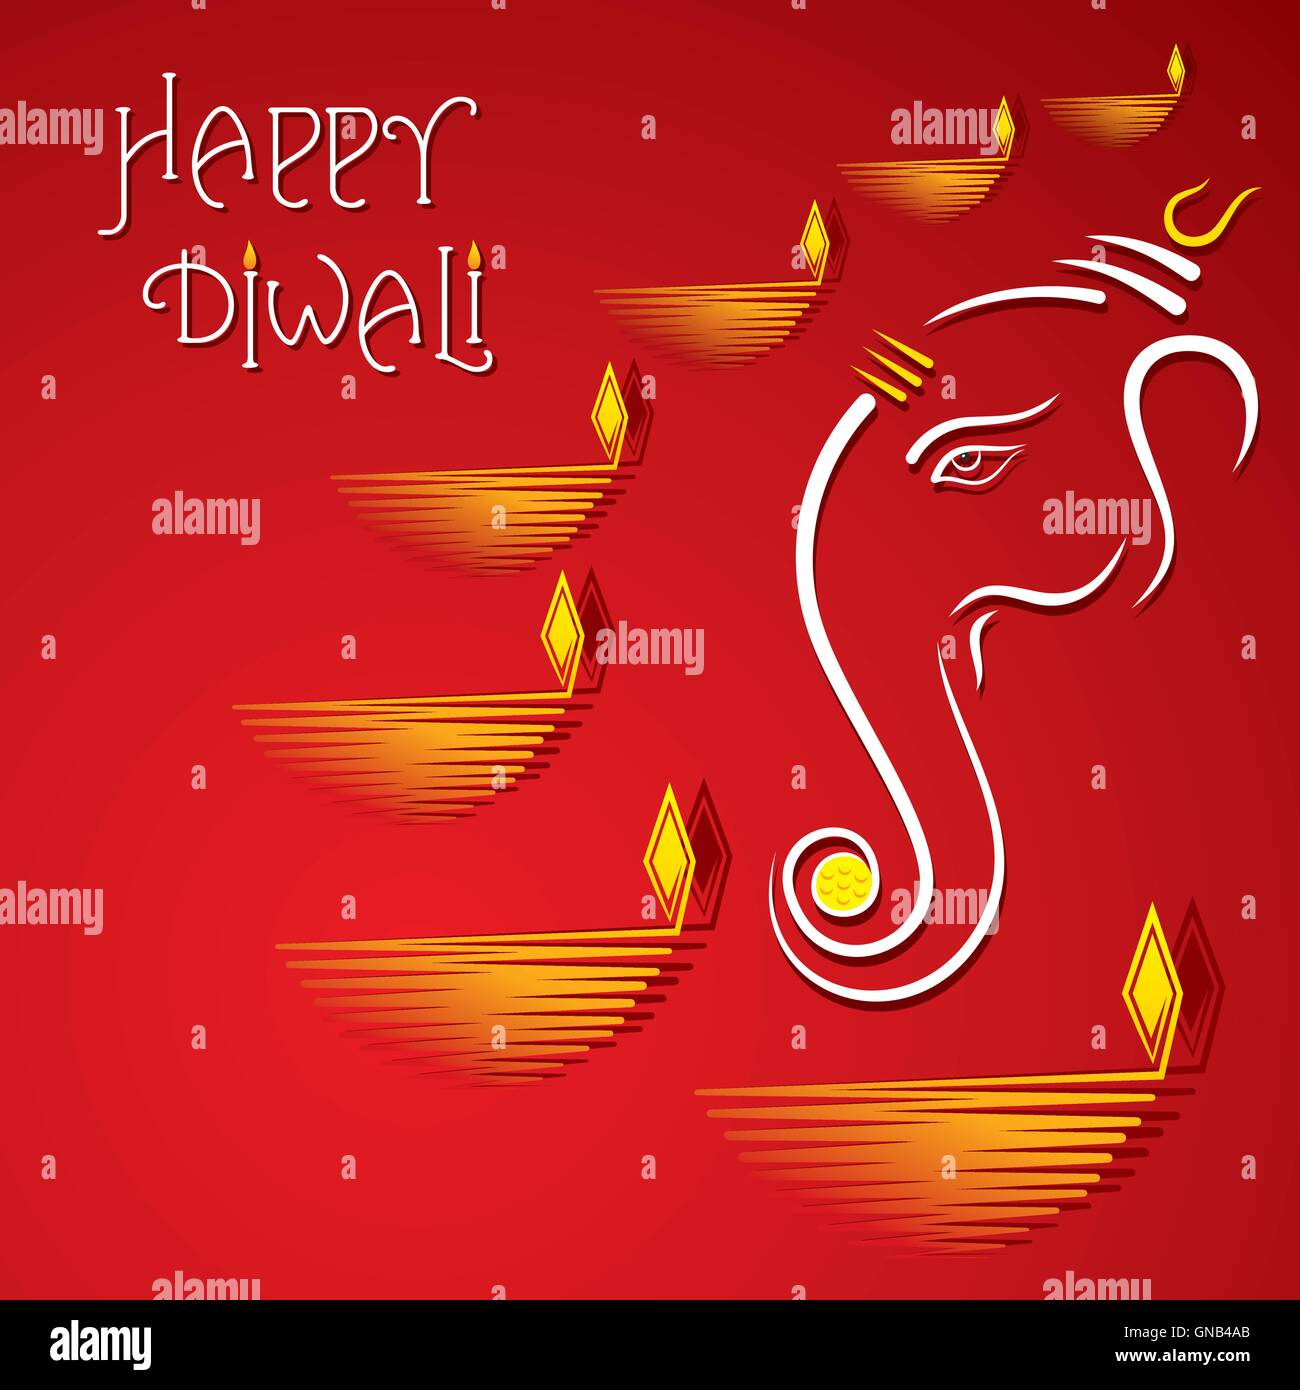 Diwali greeting card stock photos diwali greeting card stock happy diwali greeting card design stock image m4hsunfo